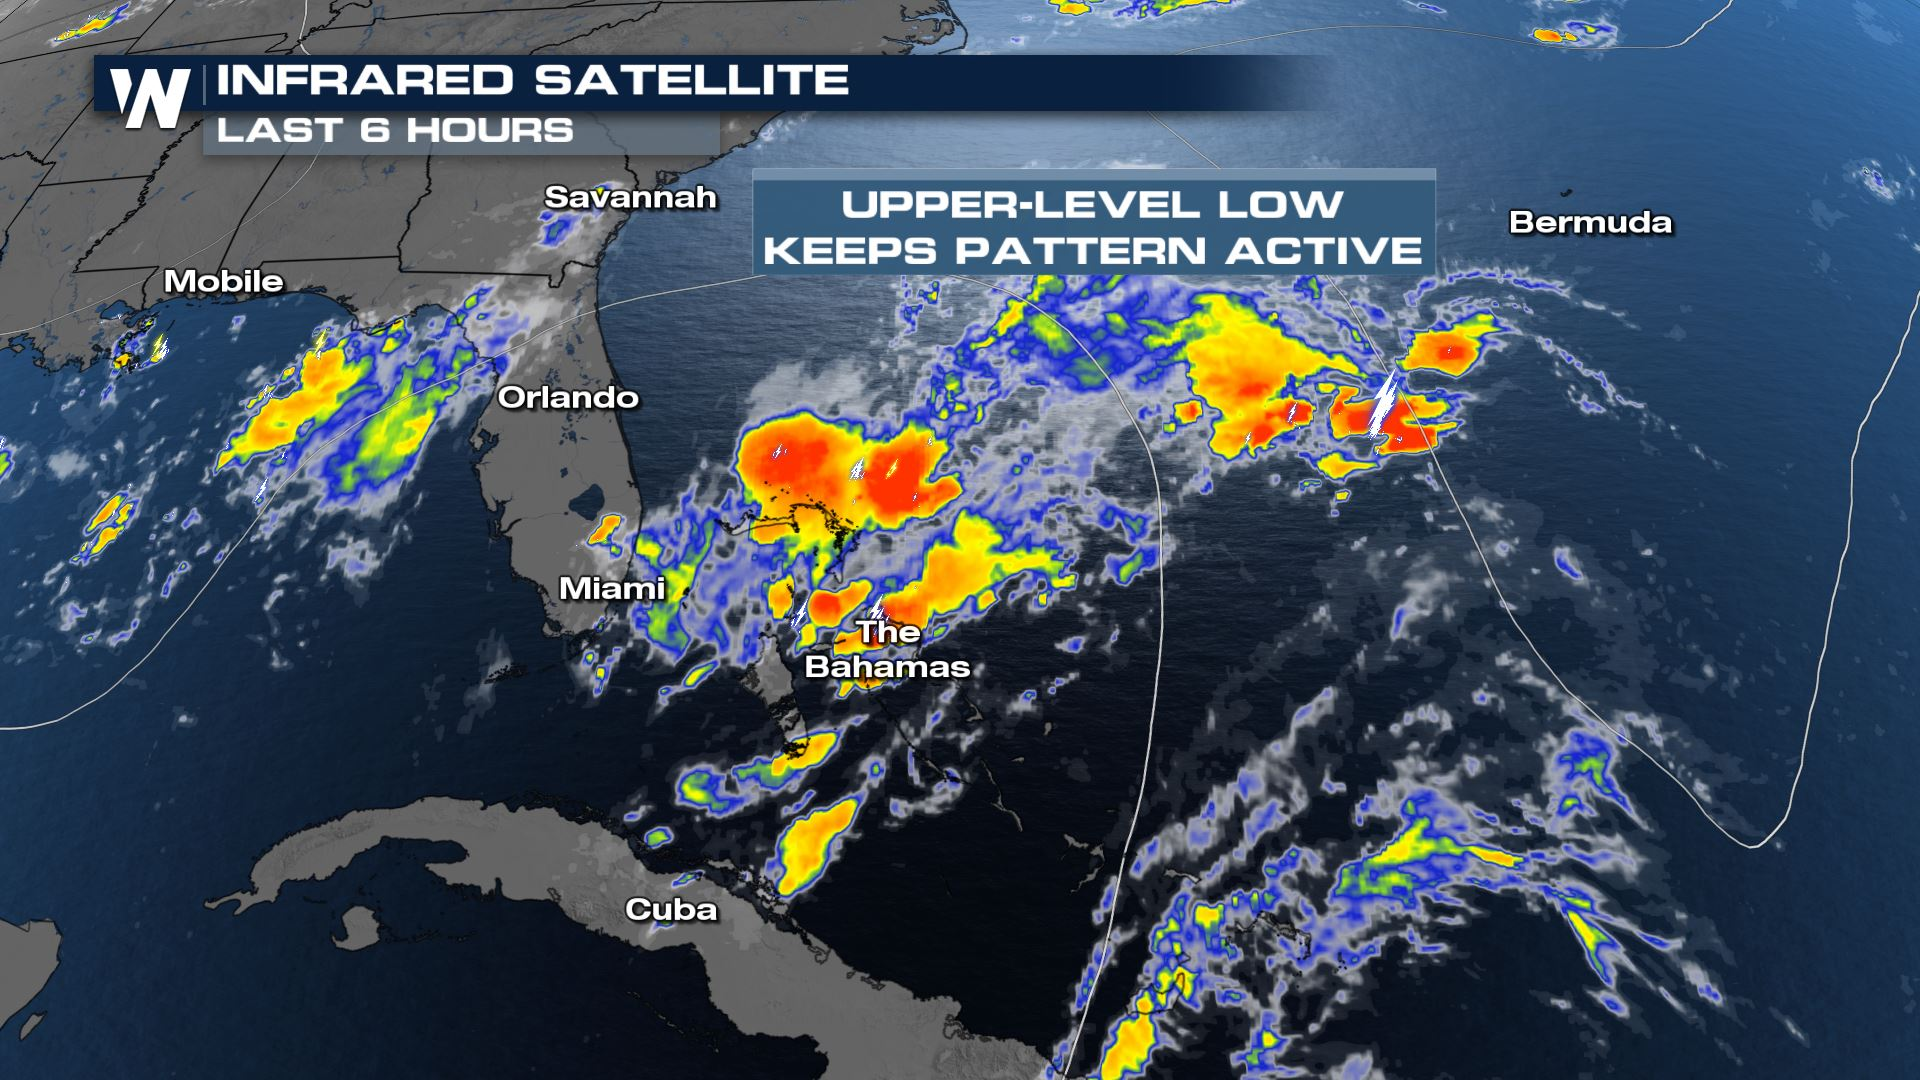 Flooding & Isolated Severe Storms Possible Along the East Coast